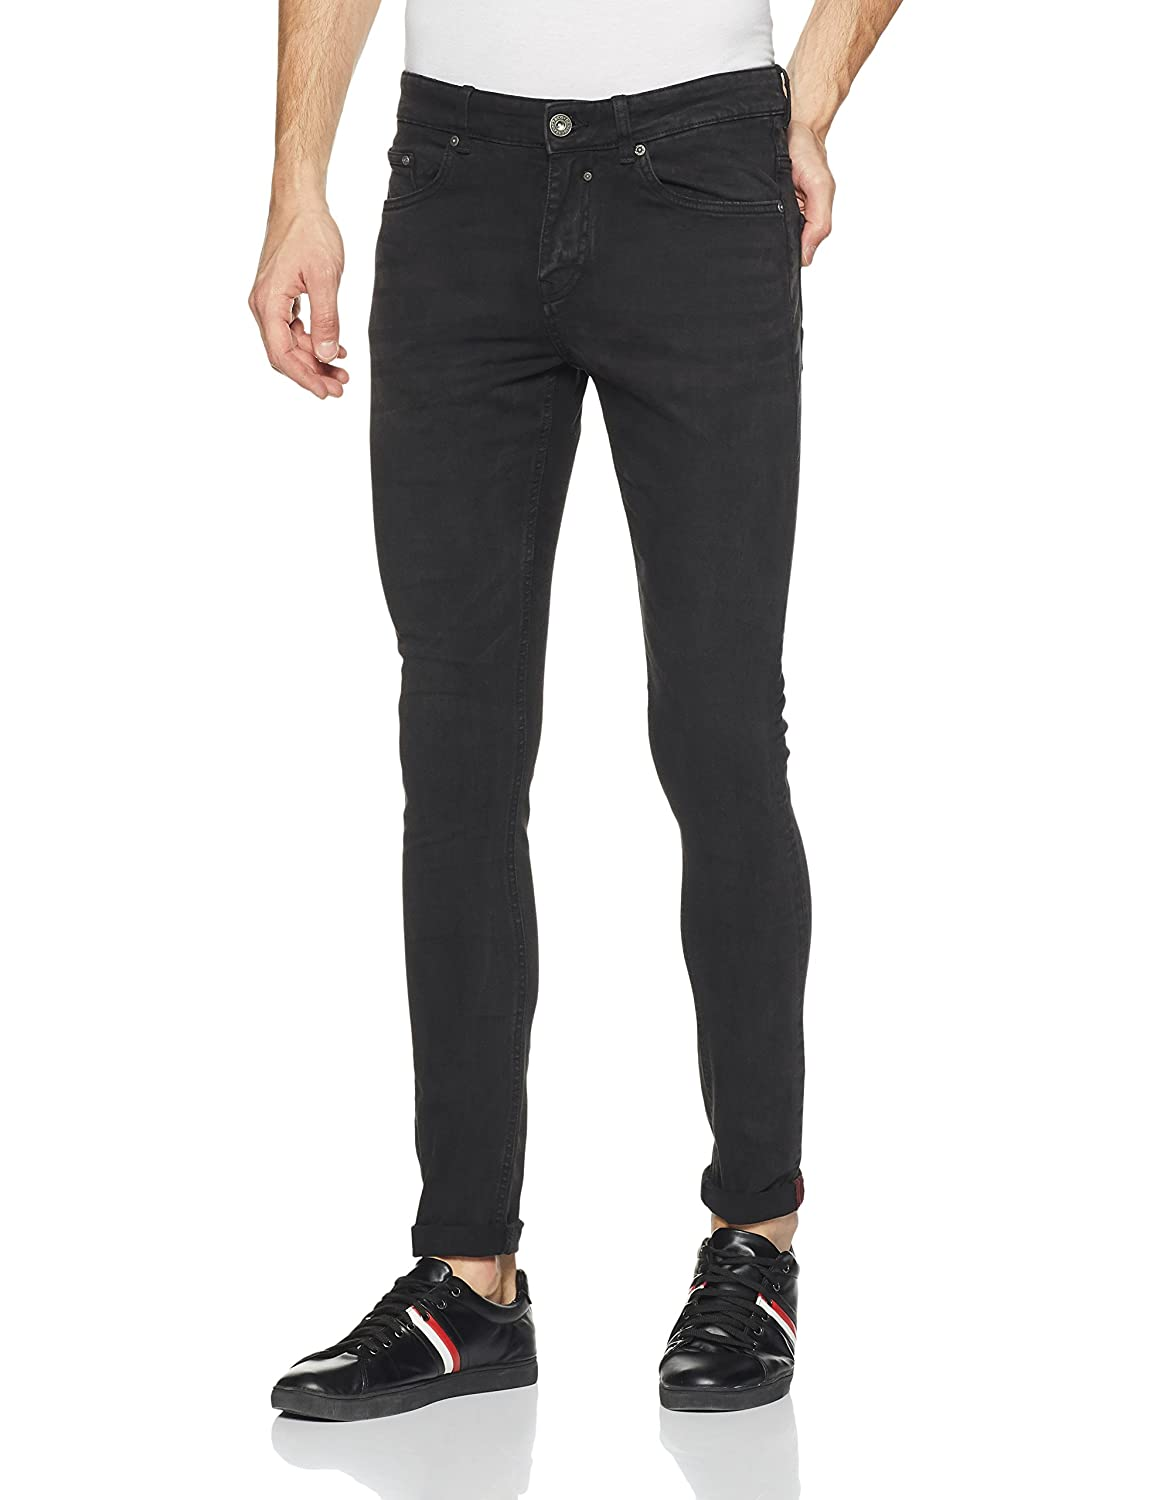 Alcott Men's Slim Fit Jeans Starting from Rs.406